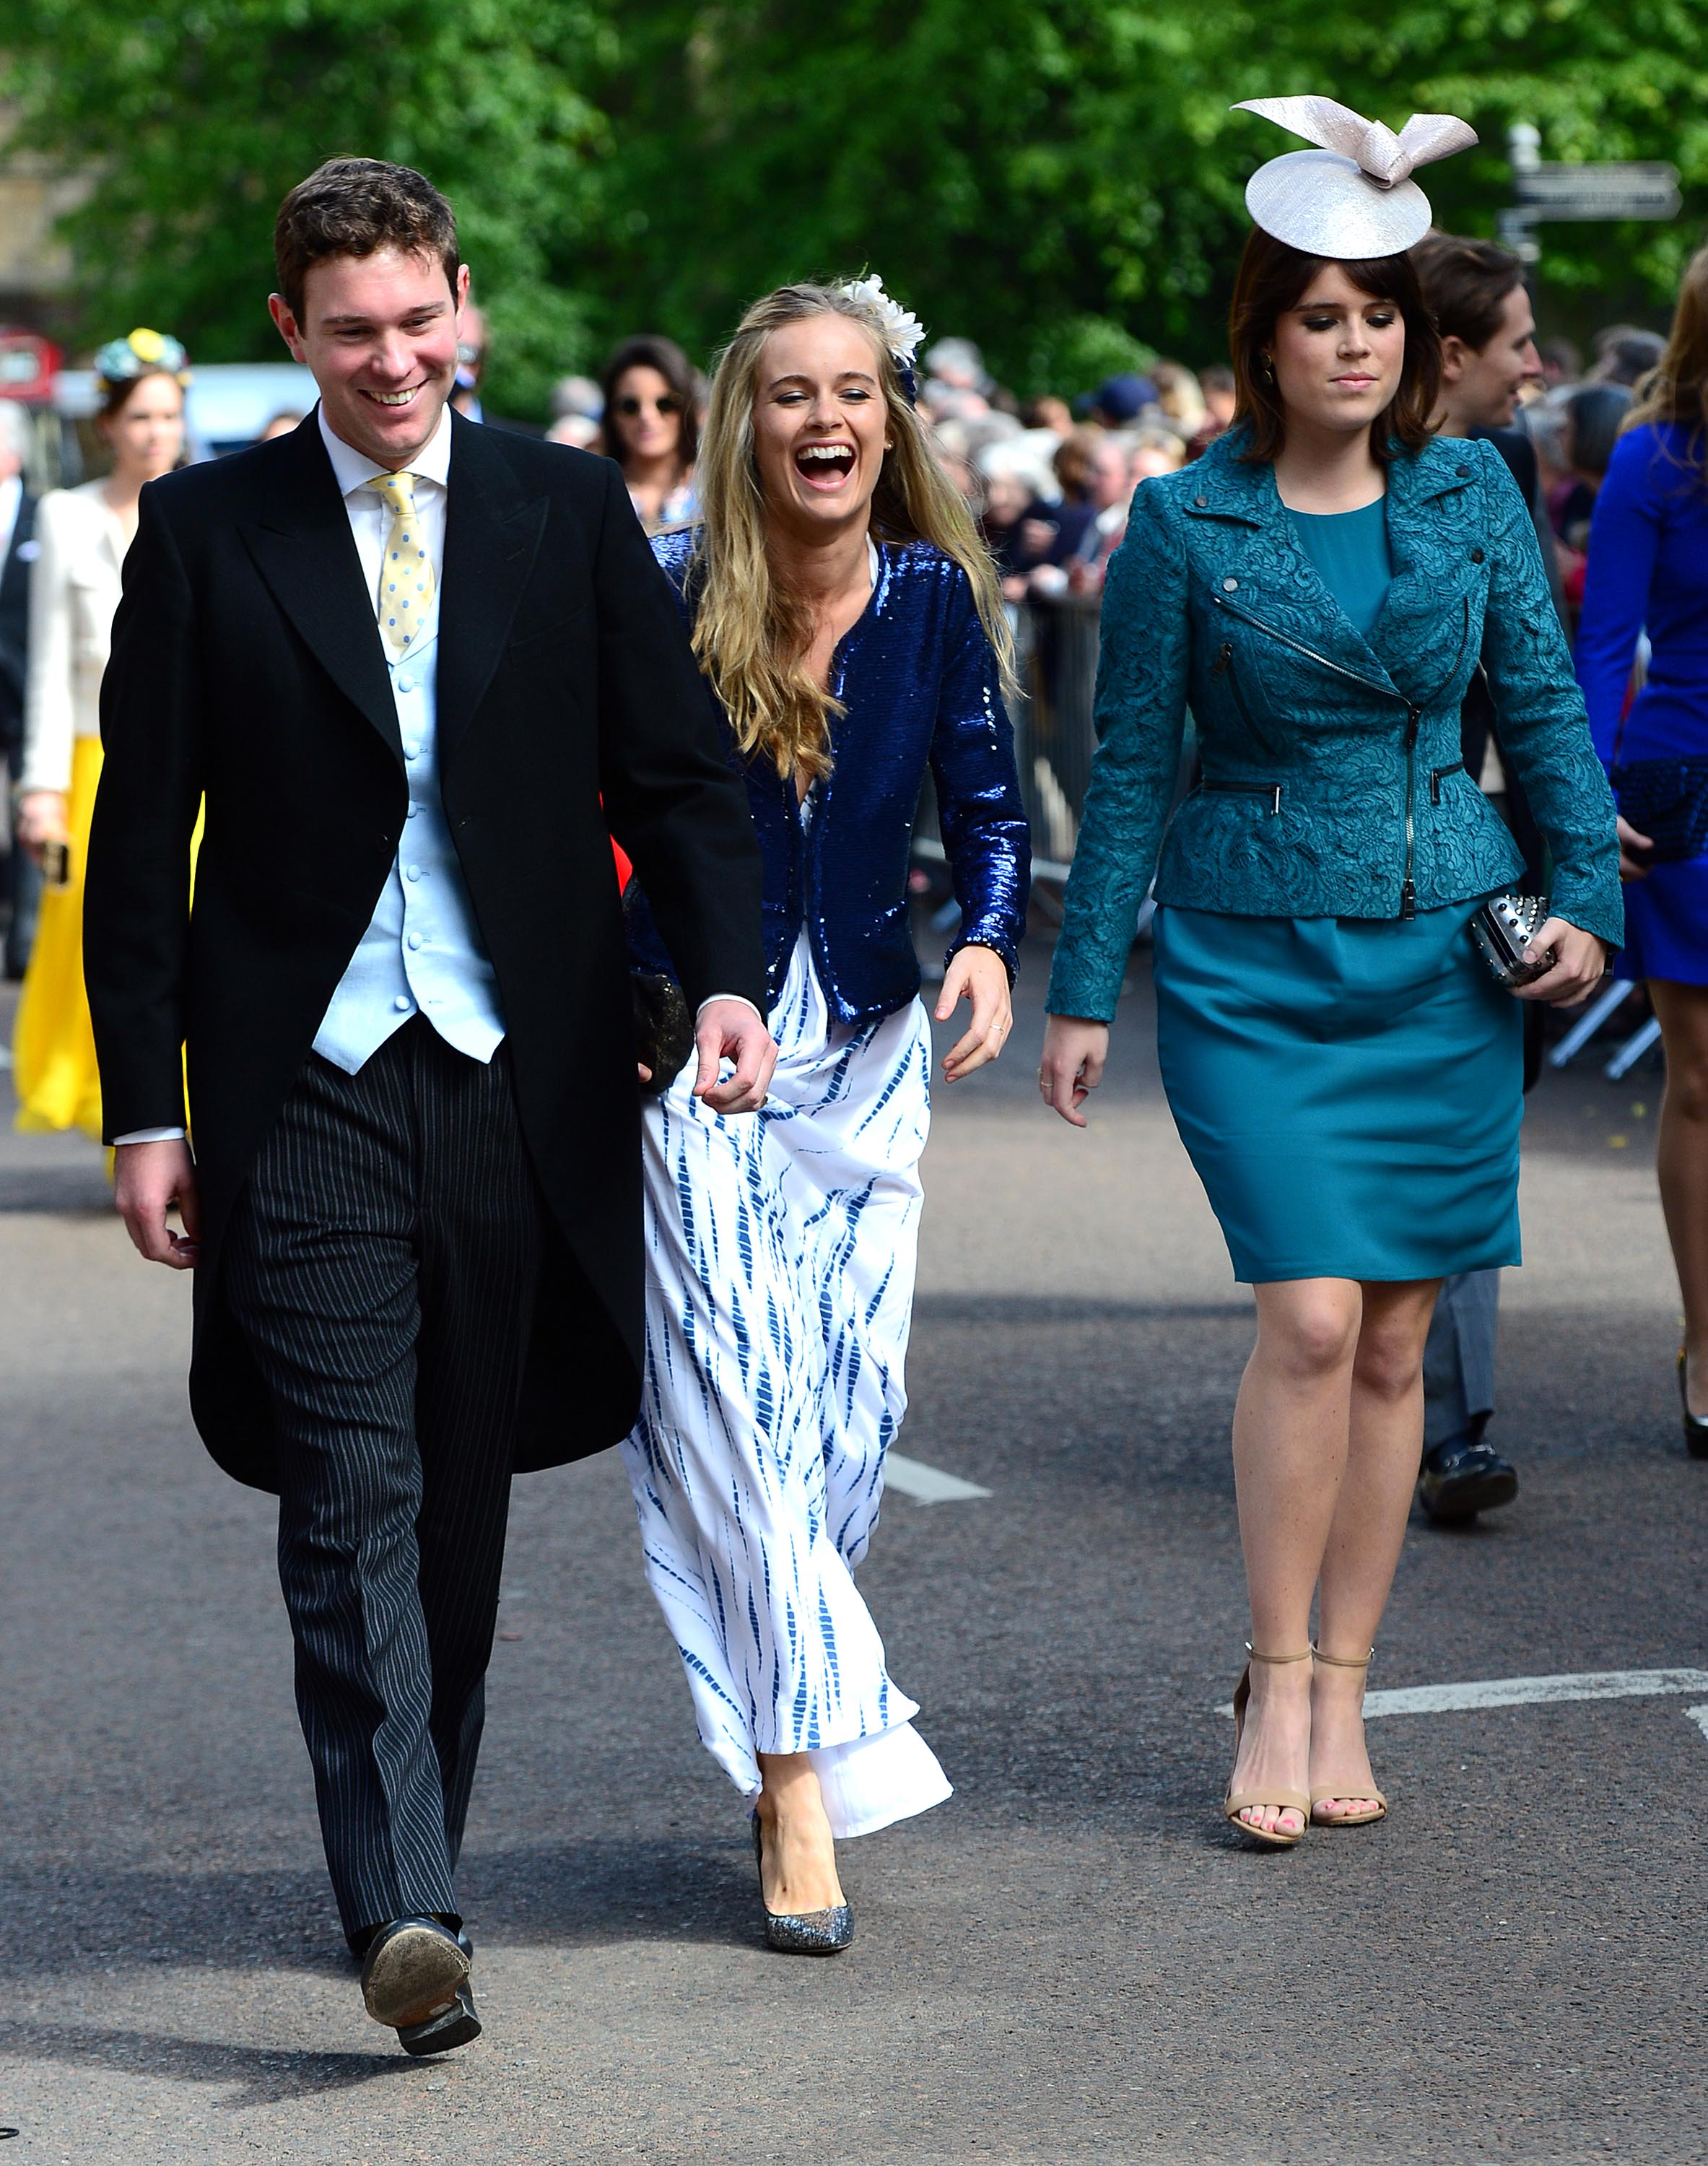 Some Dude, Cressida Bonas, and Princess Eugenie